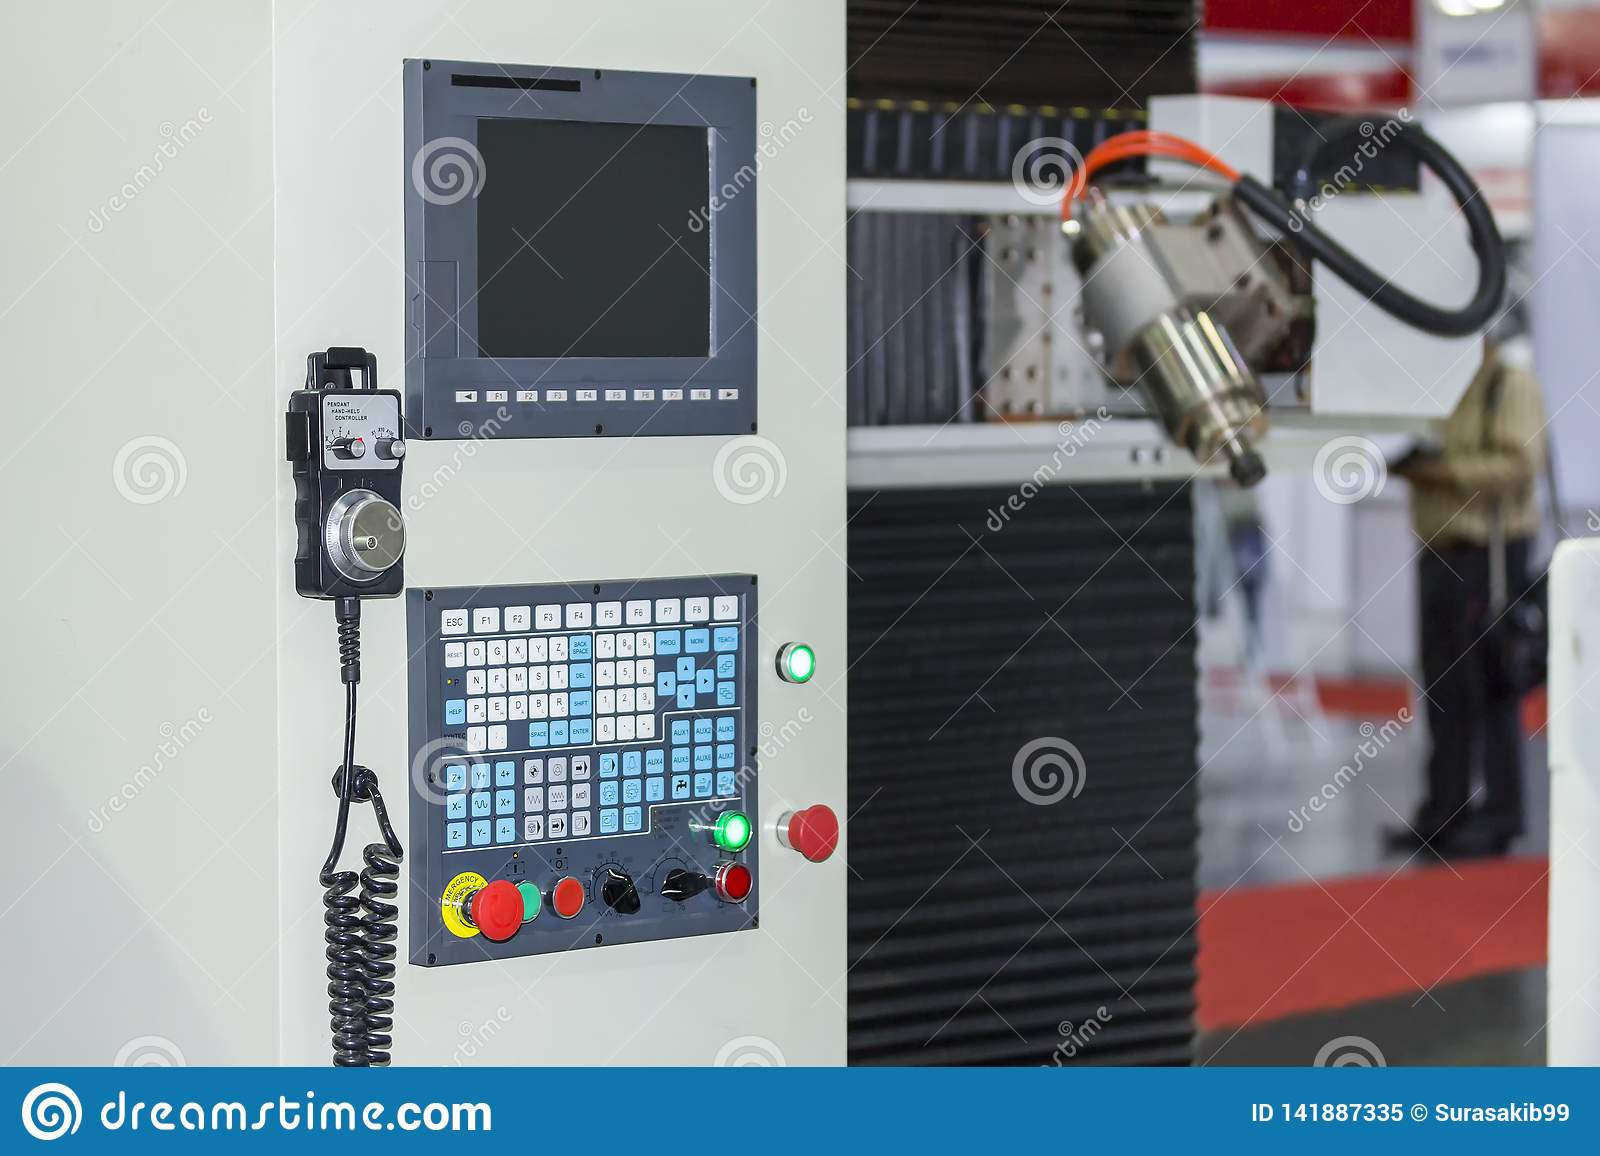 Many kind switch button and turns dial with monitor of control panel for adjust parameter cnc lathe machine or machining center